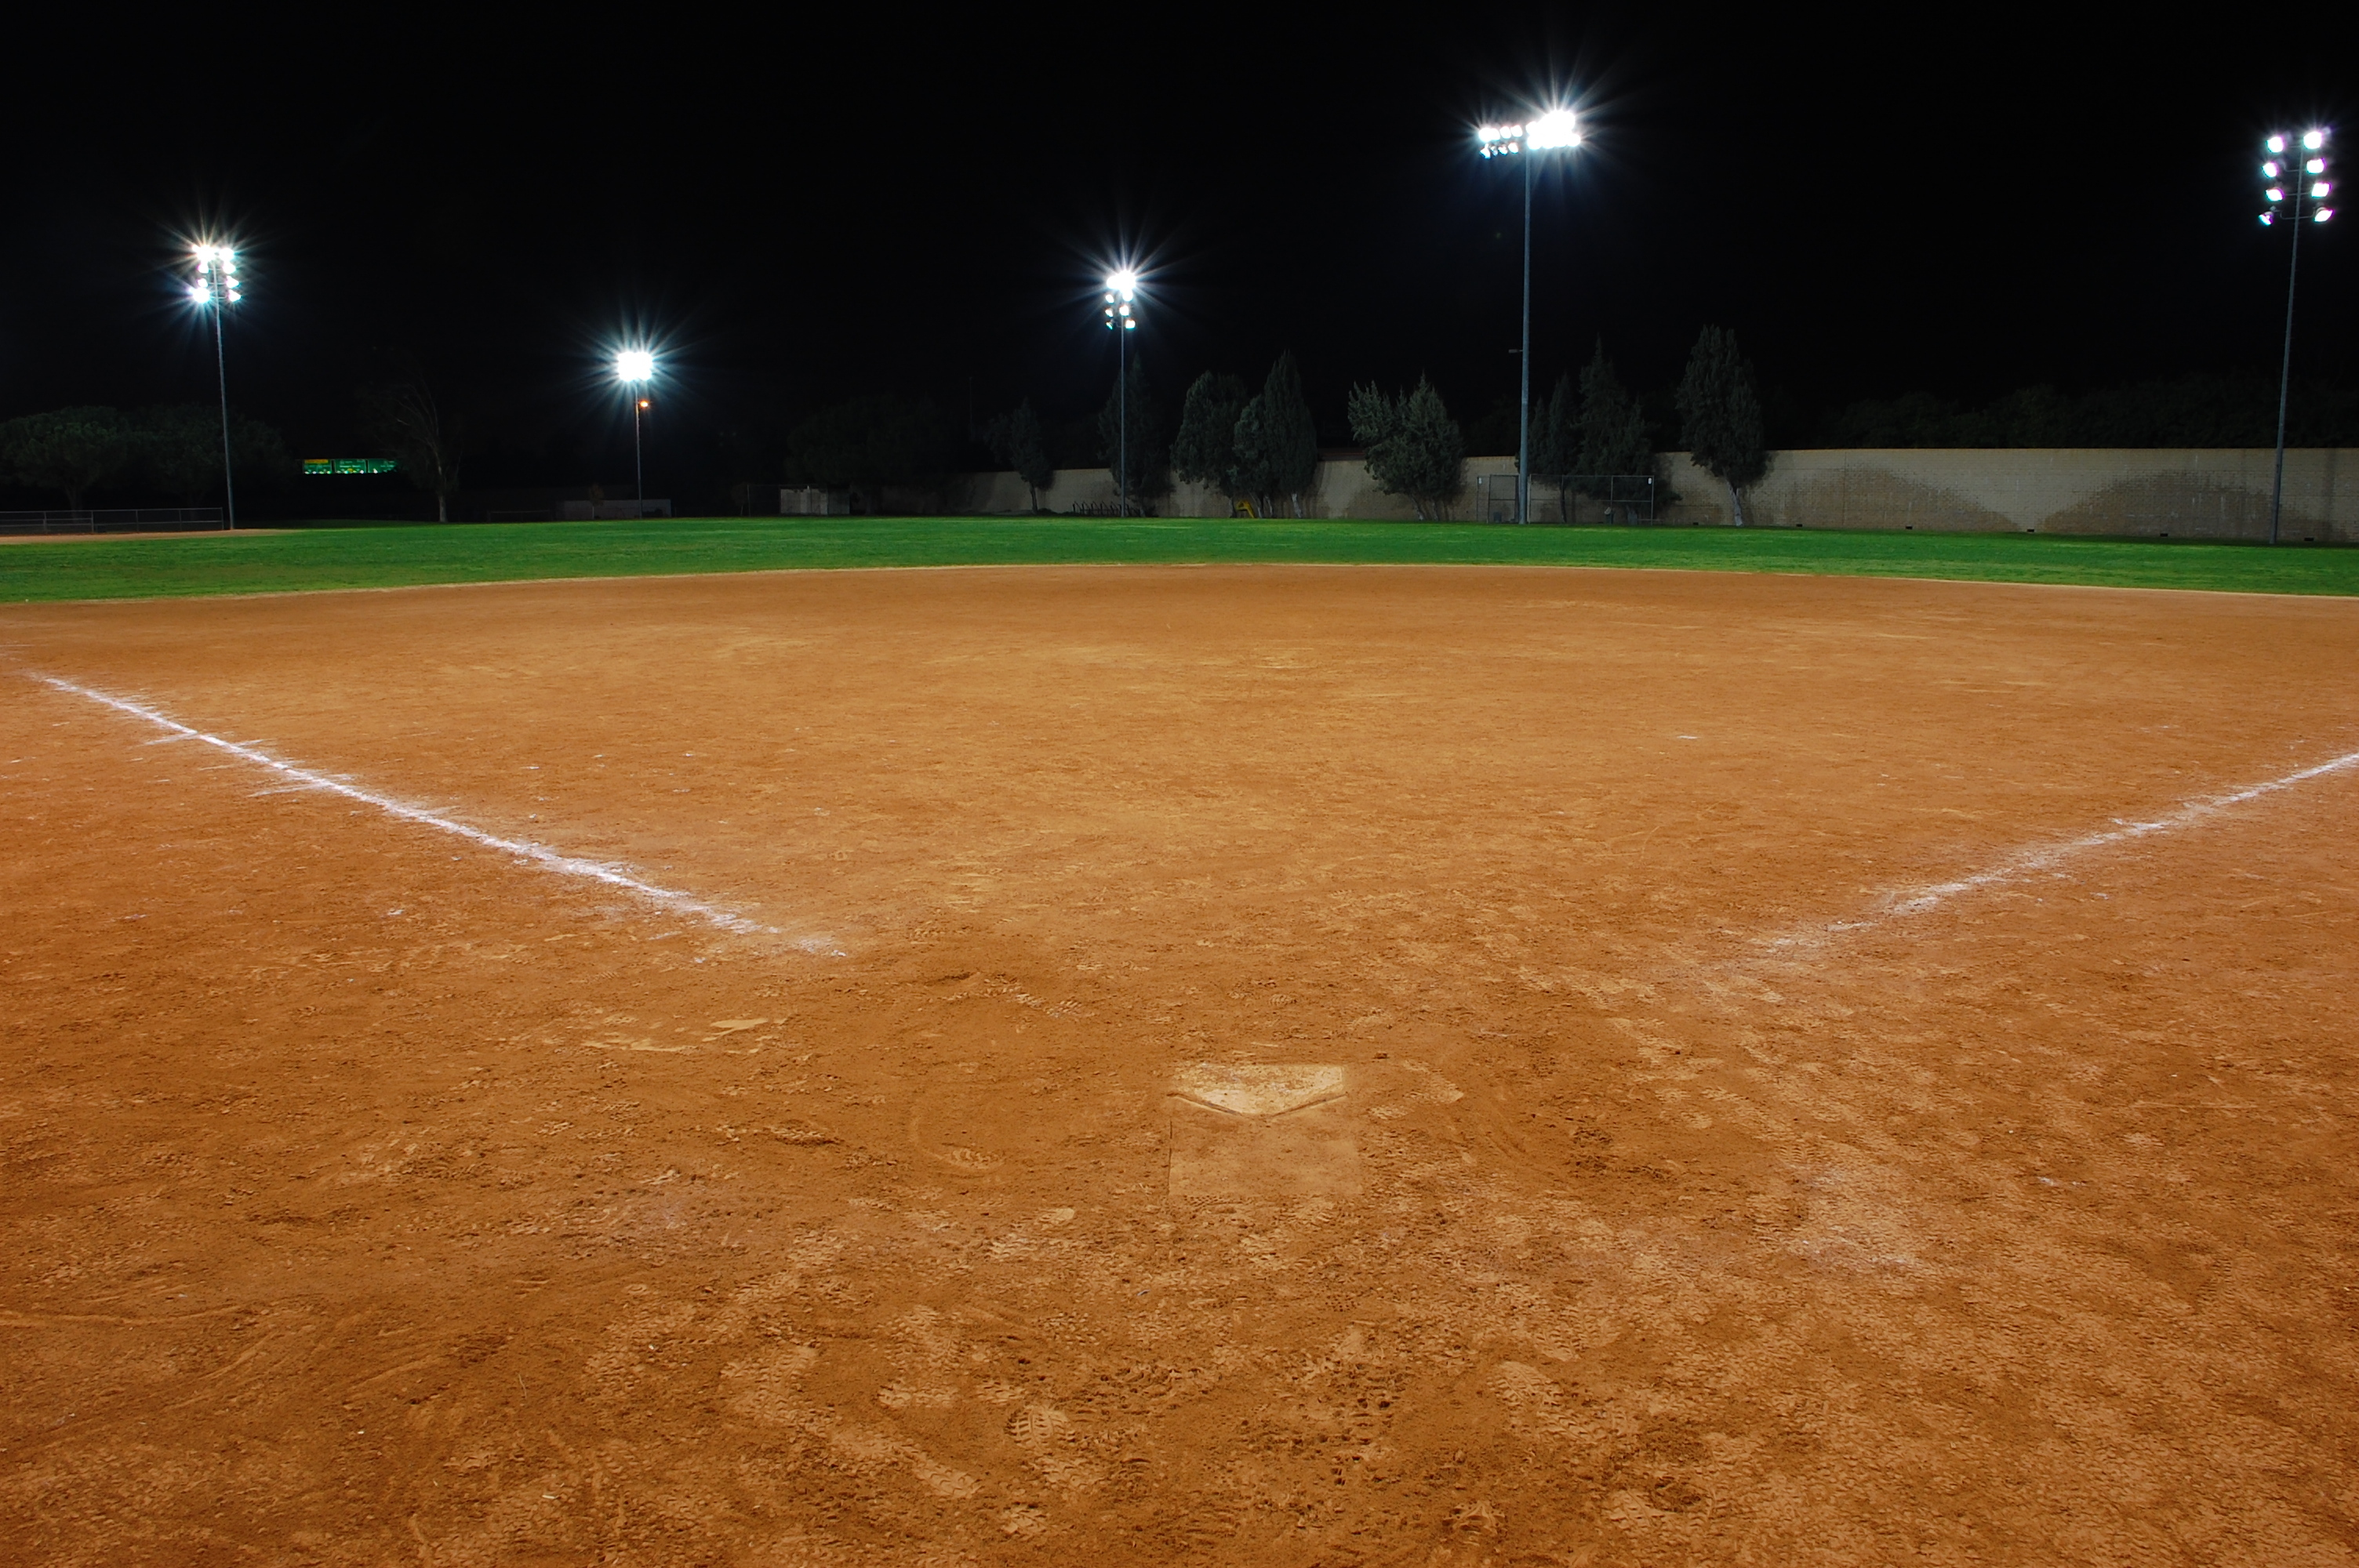 a softball field at night after a game with the lights on.